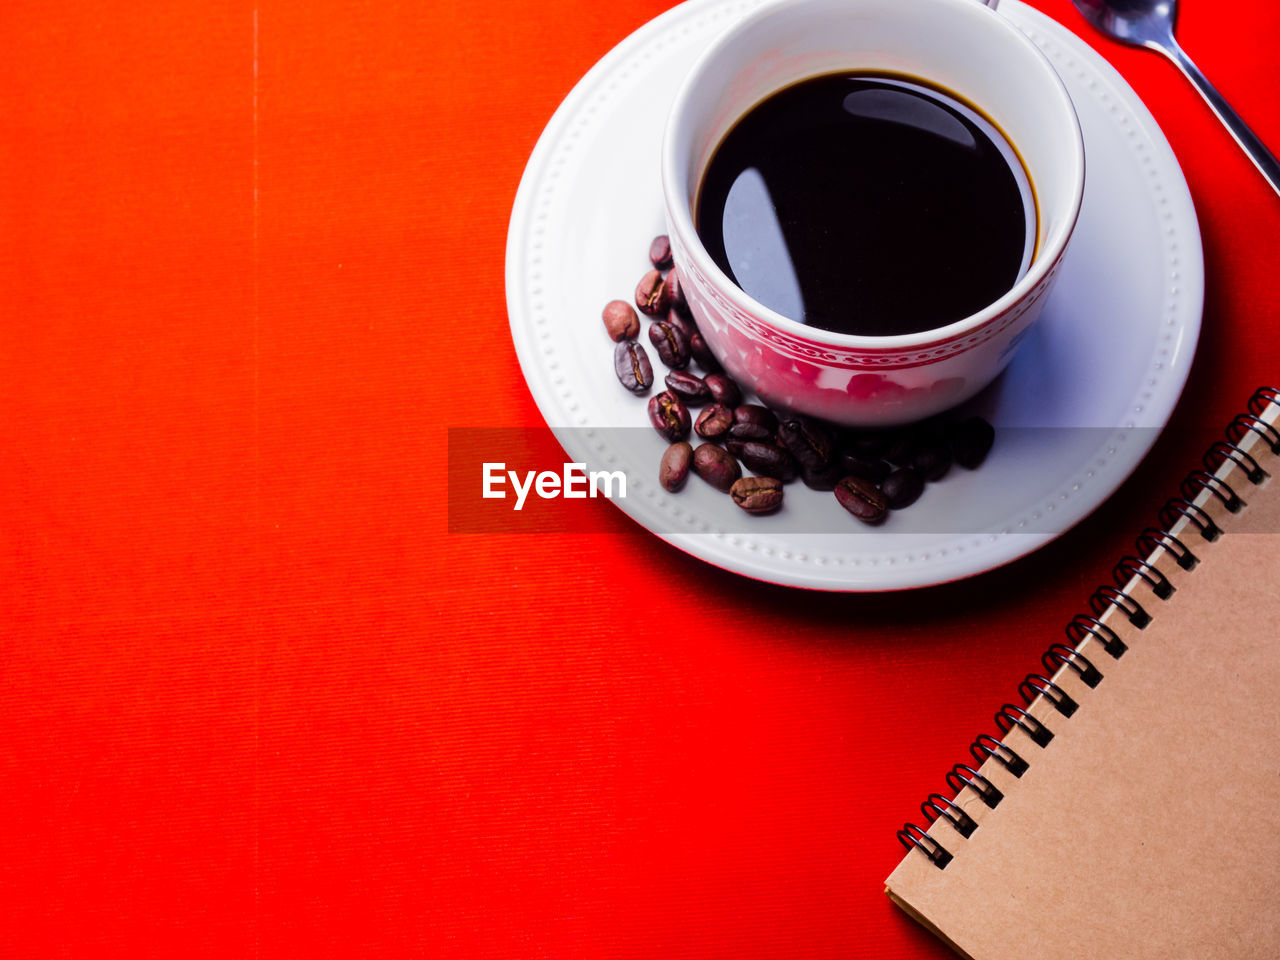 food and drink, drink, coffee, cup, coffee - drink, coffee cup, mug, refreshment, red, saucer, indoors, high angle view, crockery, table, still life, no people, spiral notebook, black coffee, copy space, freshness, black tea, non-alcoholic beverage, tea cup